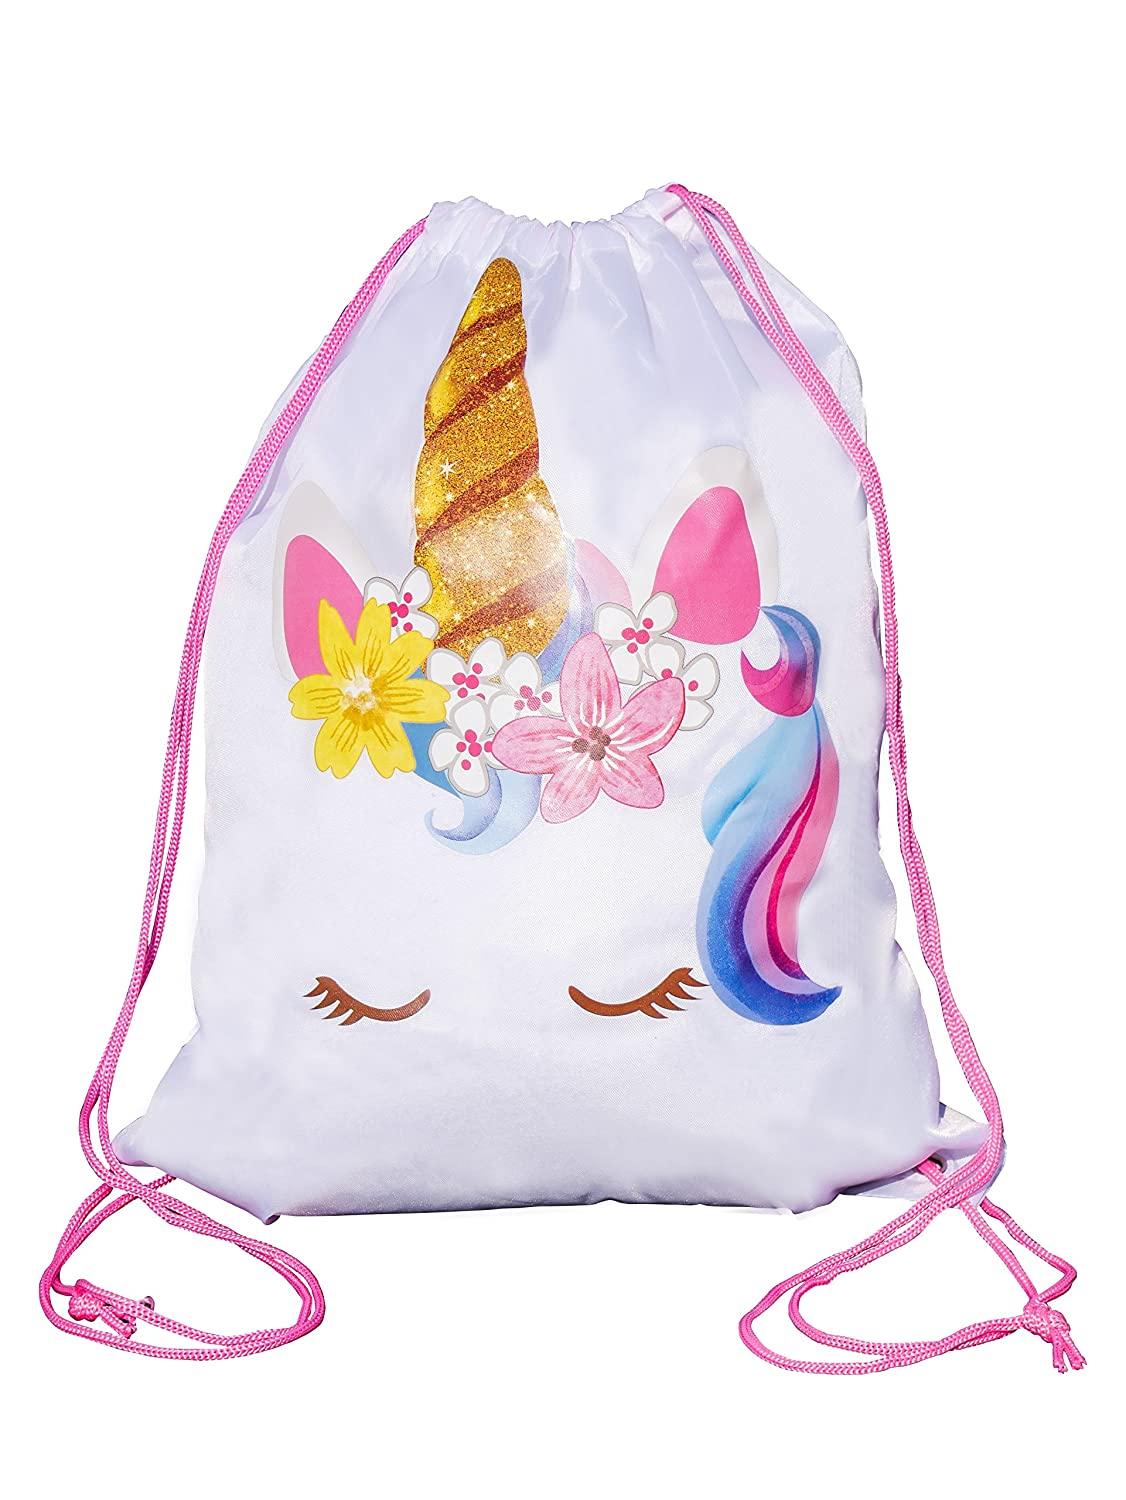 Twinkle Unicorn Unicorn Drawstring Bag, Unicorn Party Favor Bag, Overnight Bag (1) G&N Merchandise